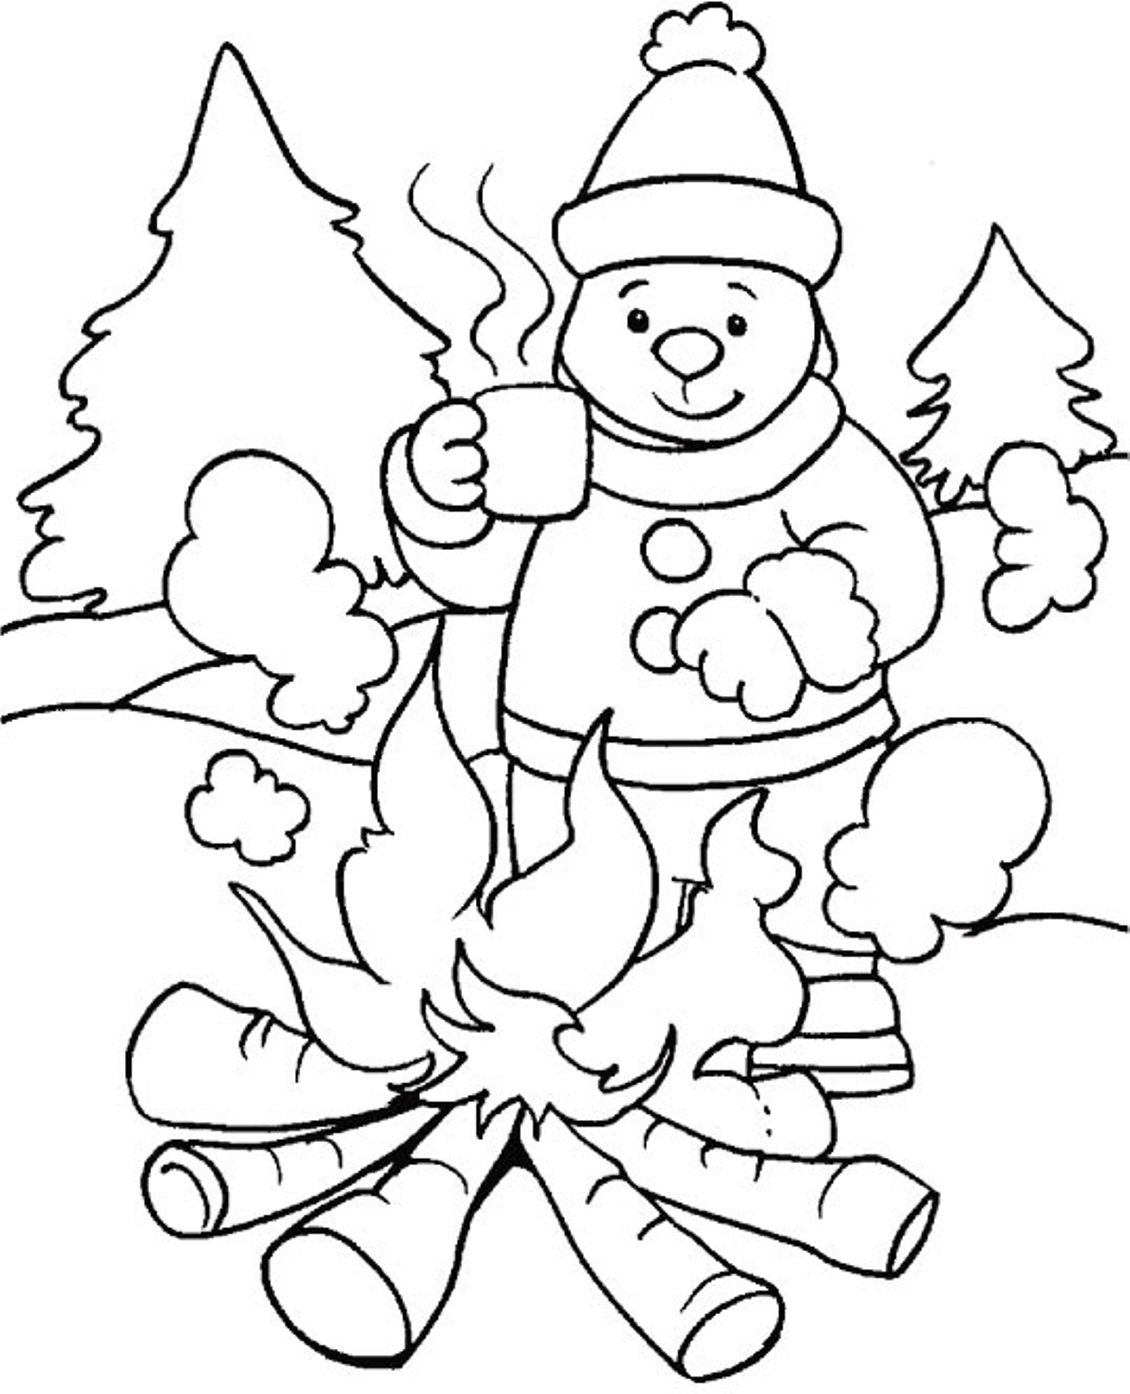 winter coloring pages kindergarten - photo#24